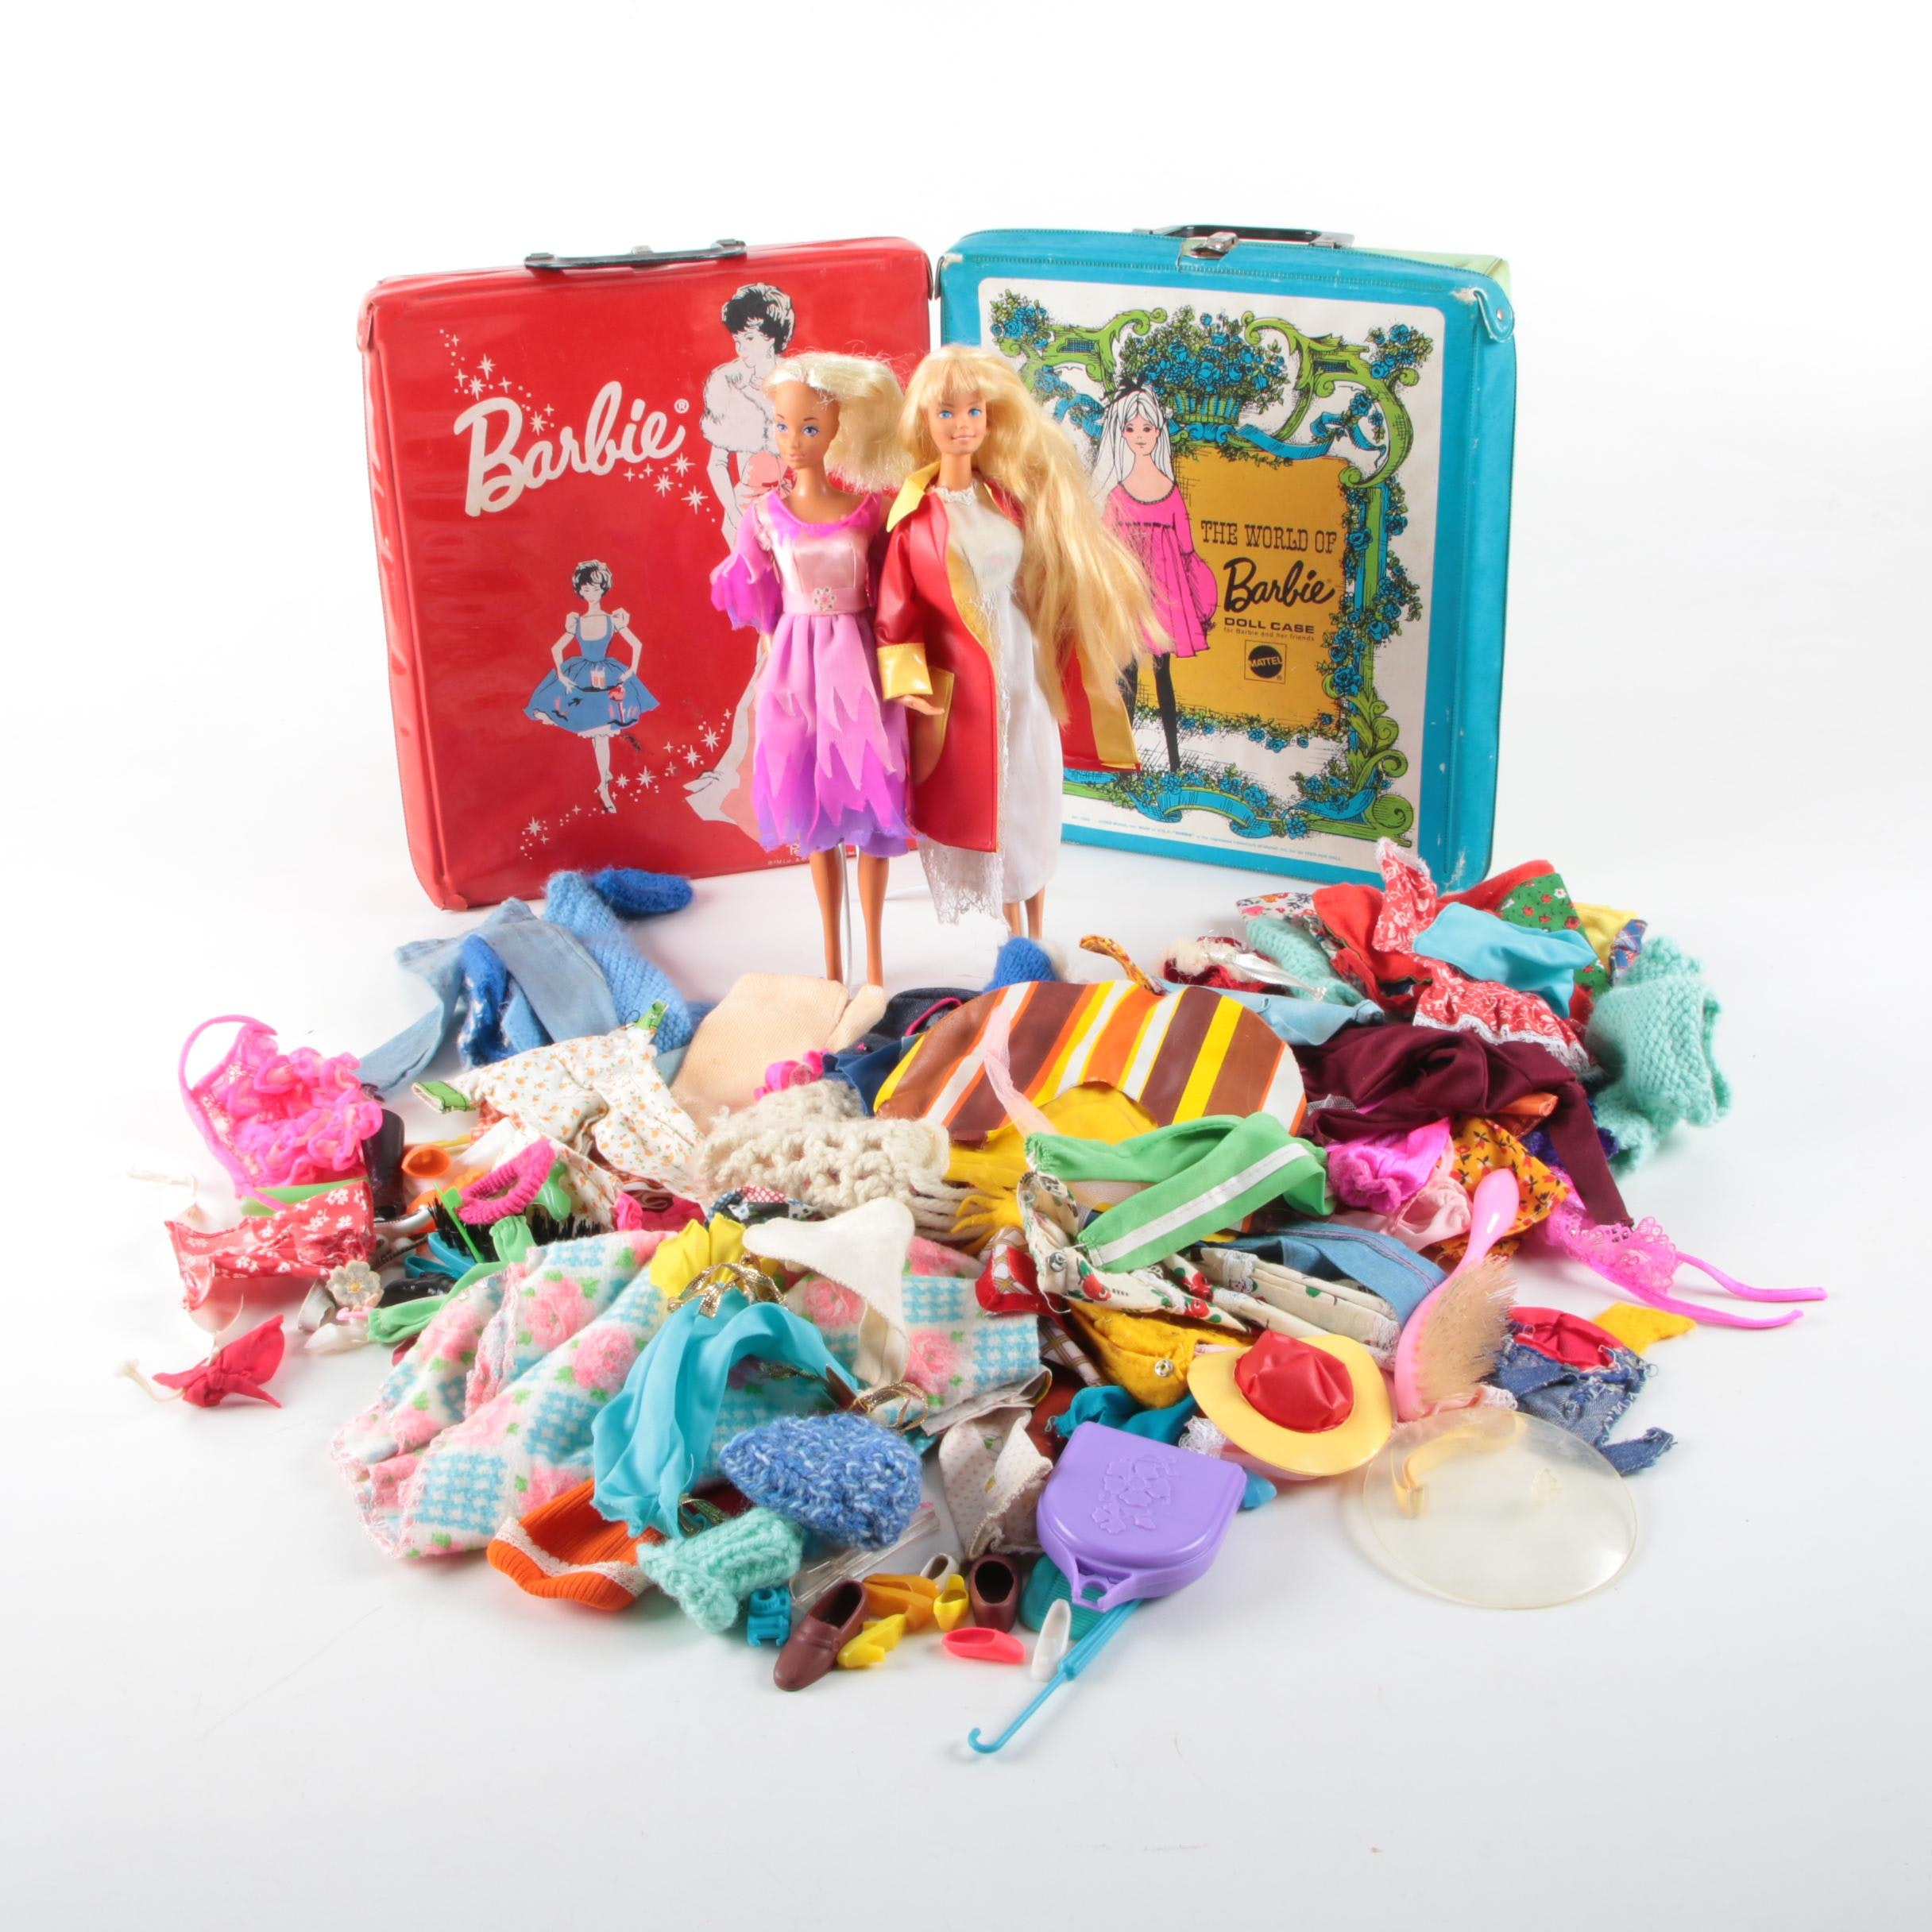 Vintage Mattel Barbie Dolls with 1960s Carrying Cases and Accessories